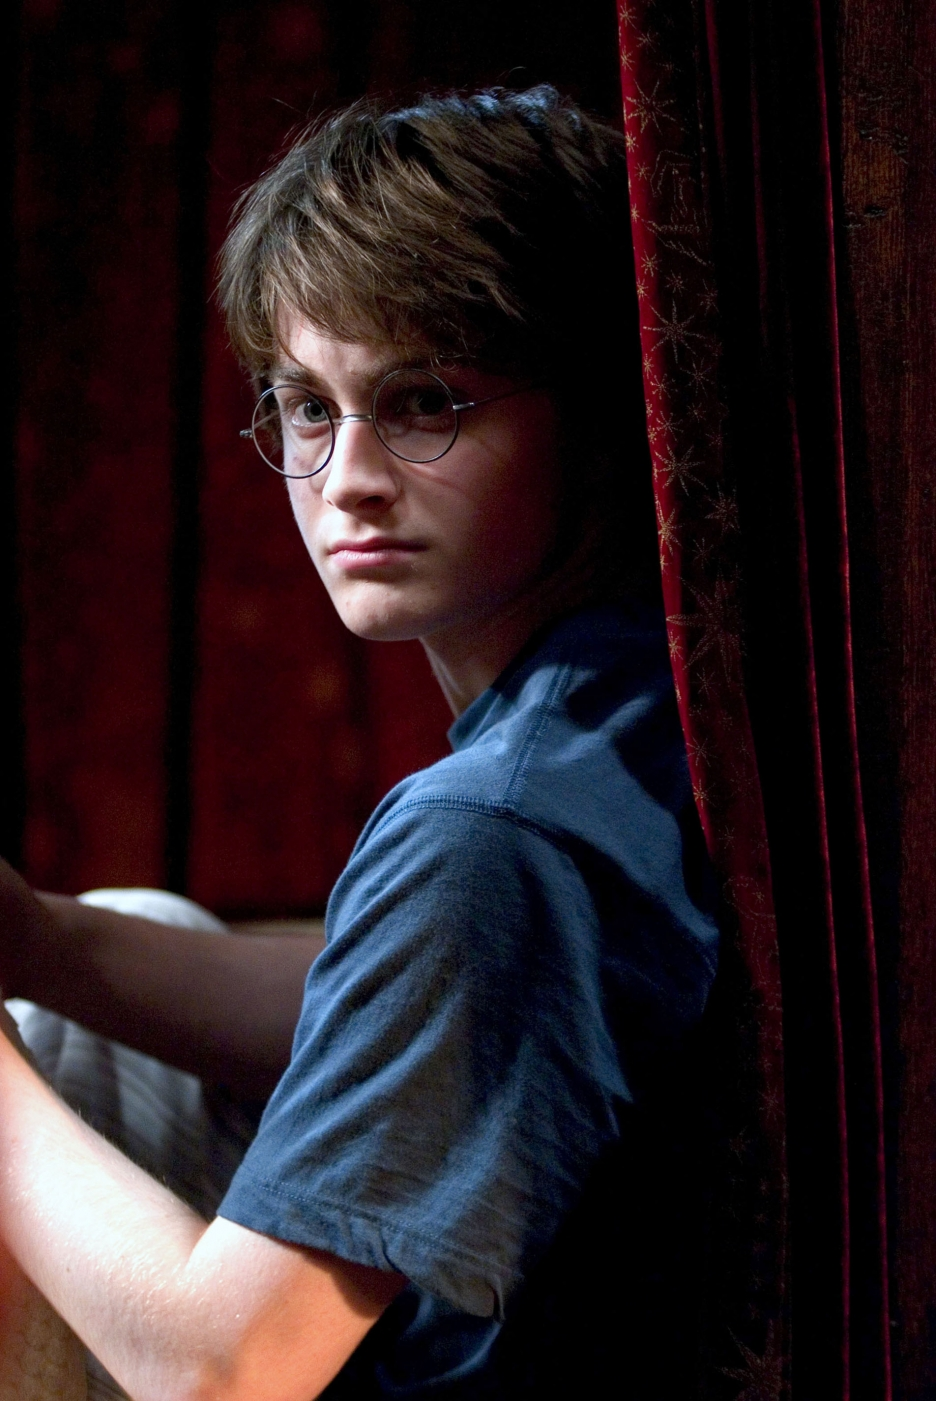 Le Meilleur Movie Picture Harry Potter And The Goblet Of Fire 2005 Ce Mois Ci